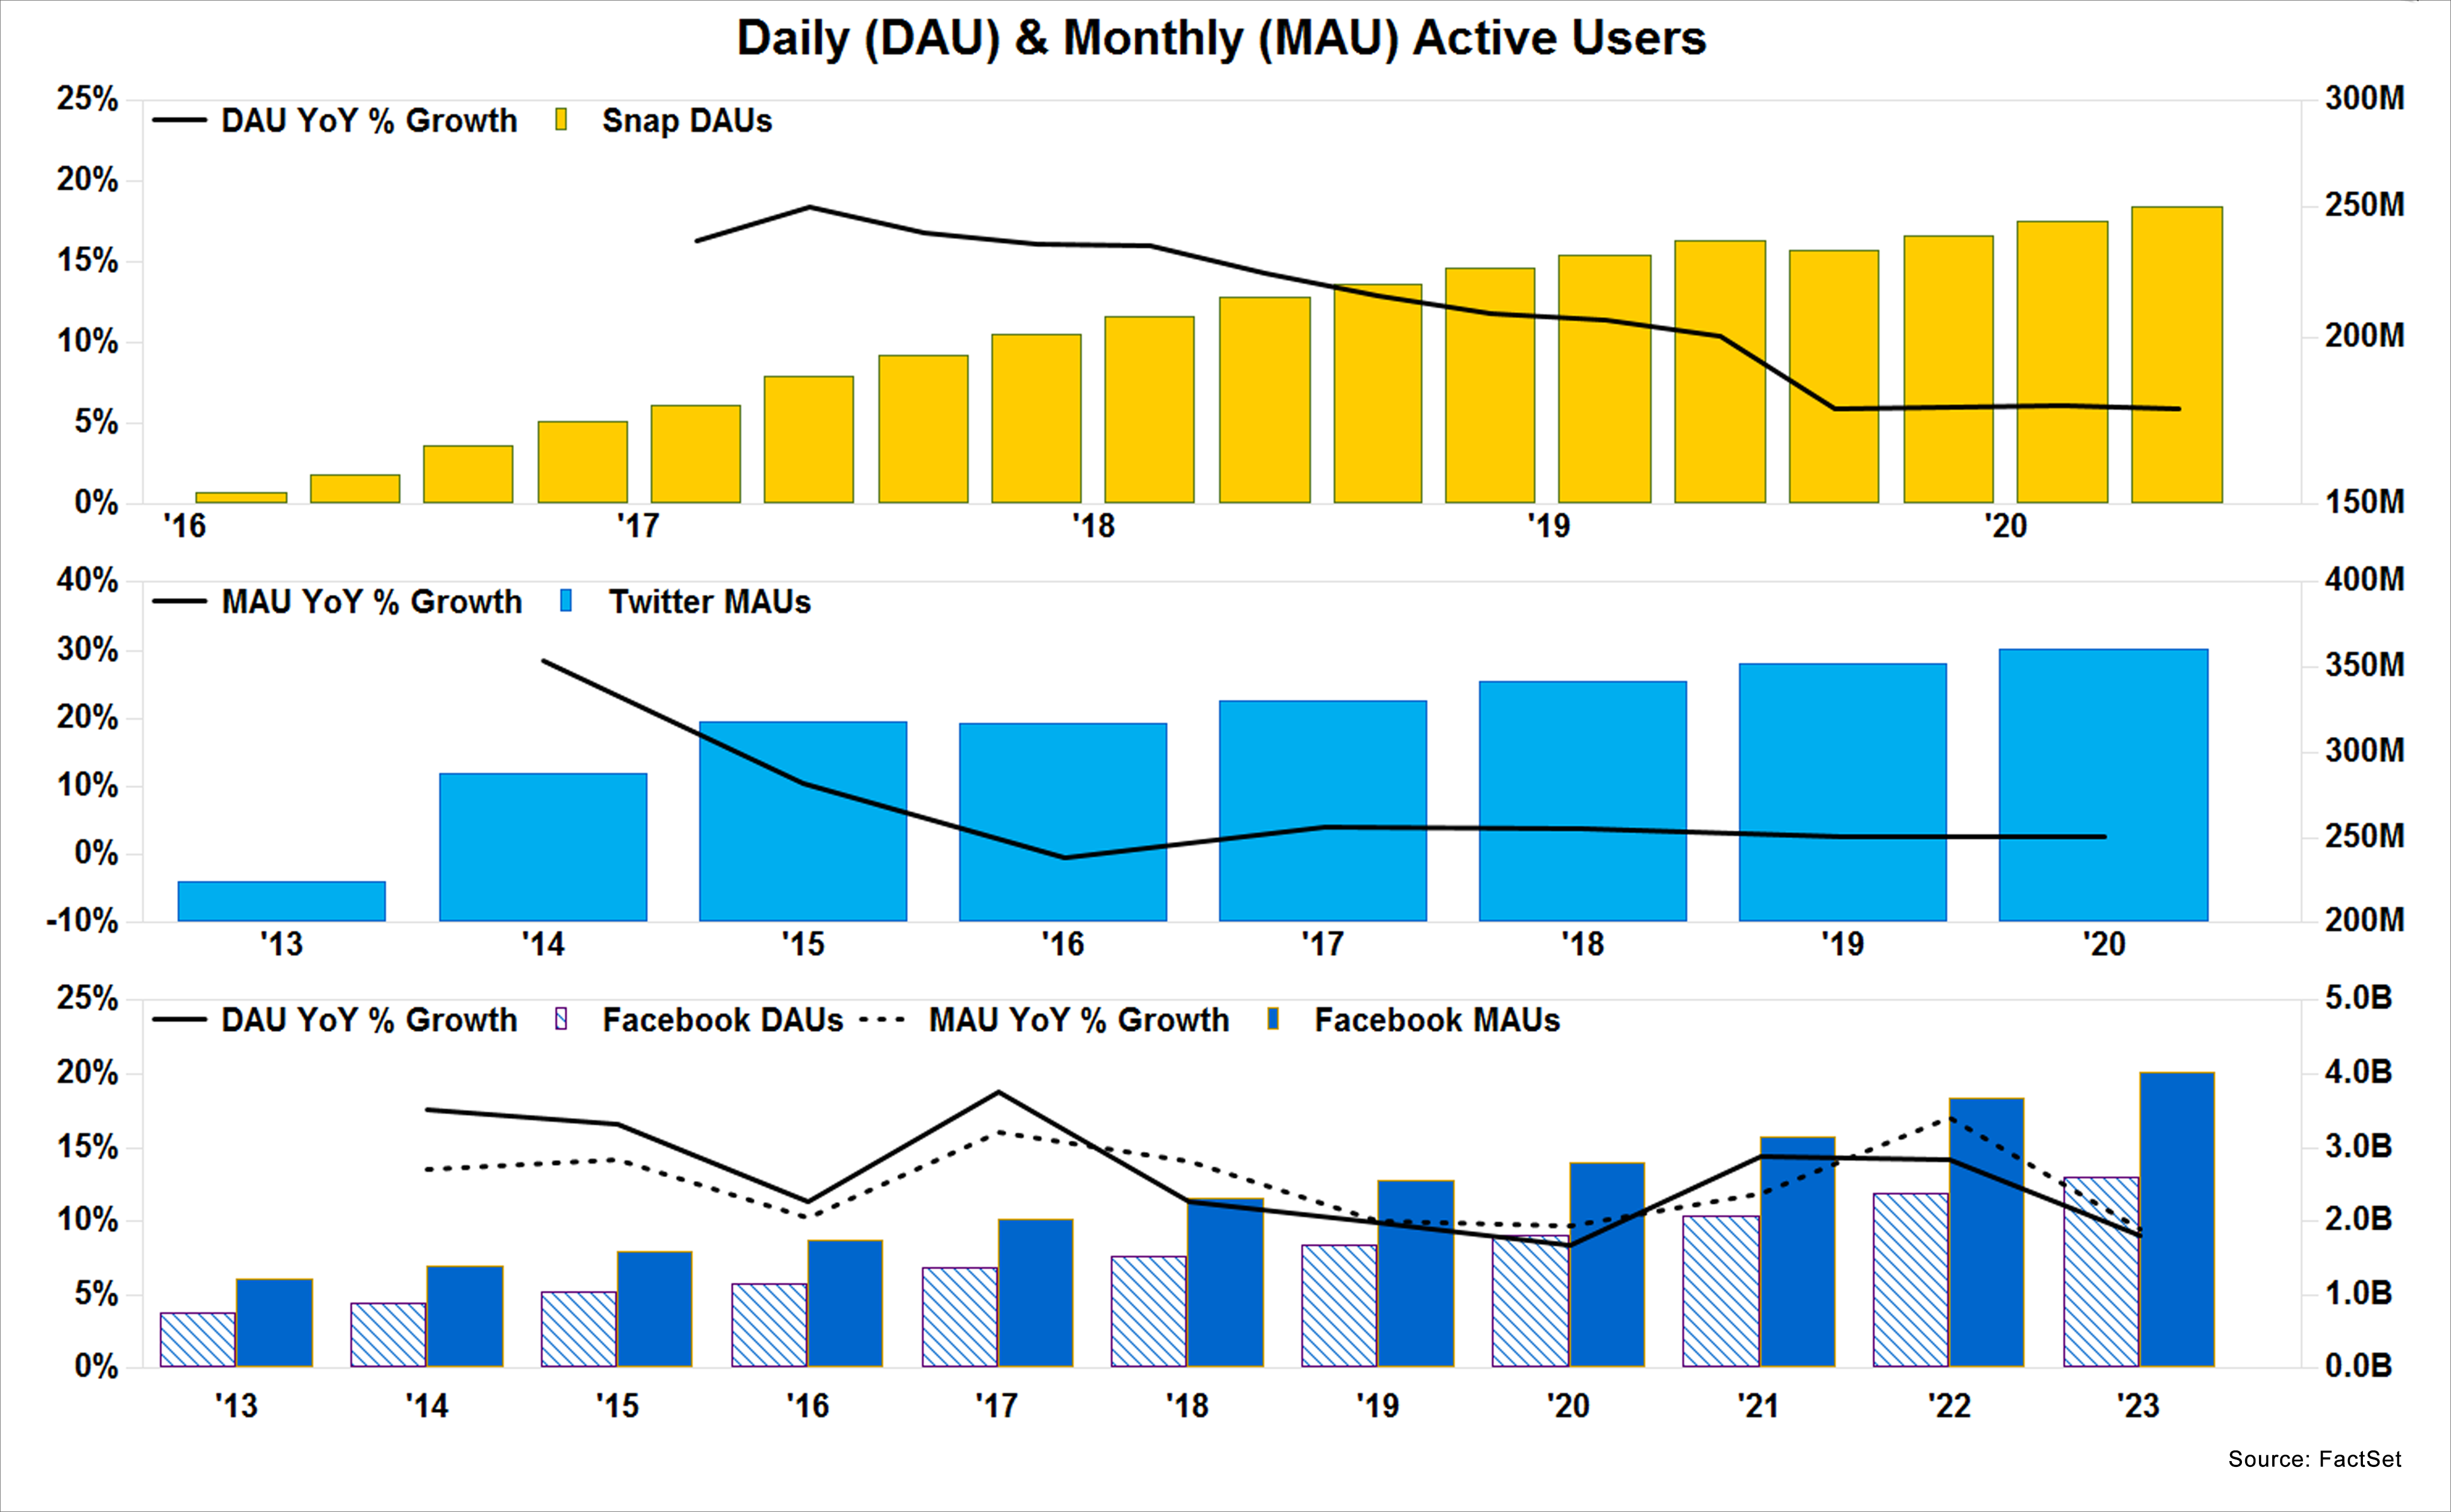 Daily DAU and Monthly MAU Active Users